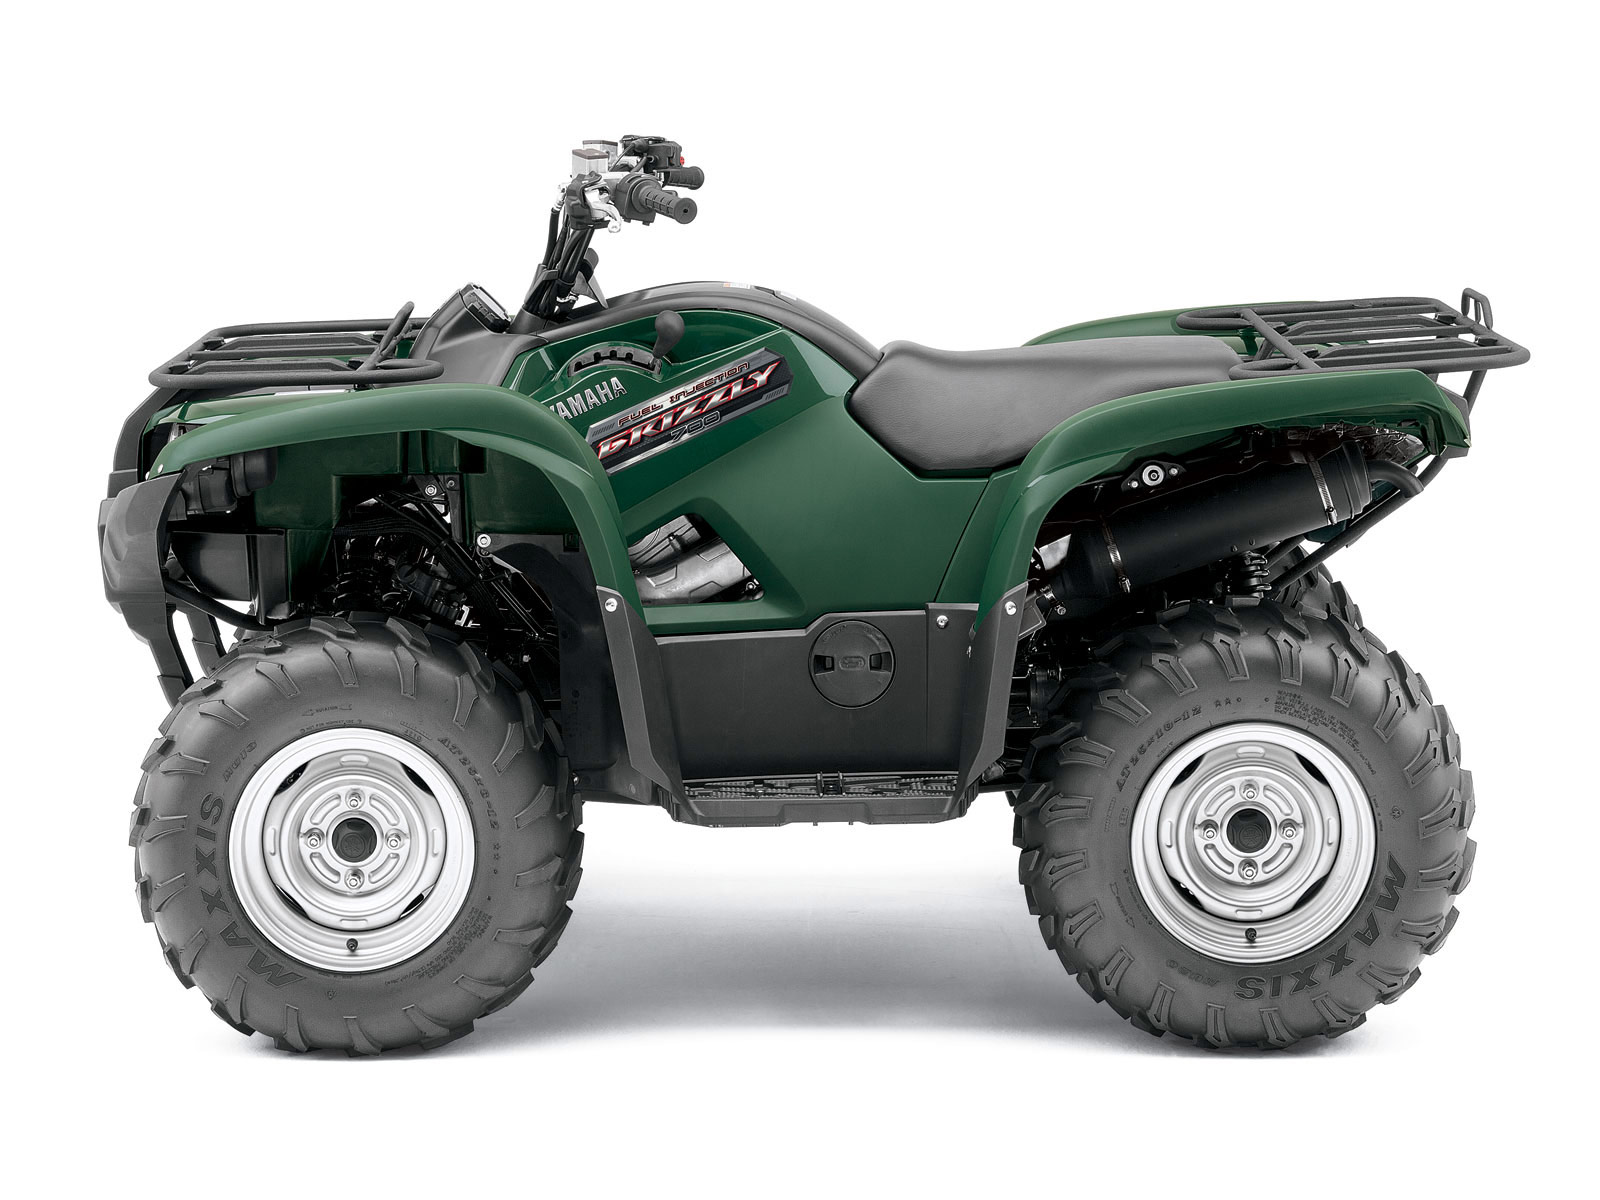 2012 yamaha grizzly 700 fi auto 4x4 atv pictures review. Black Bedroom Furniture Sets. Home Design Ideas